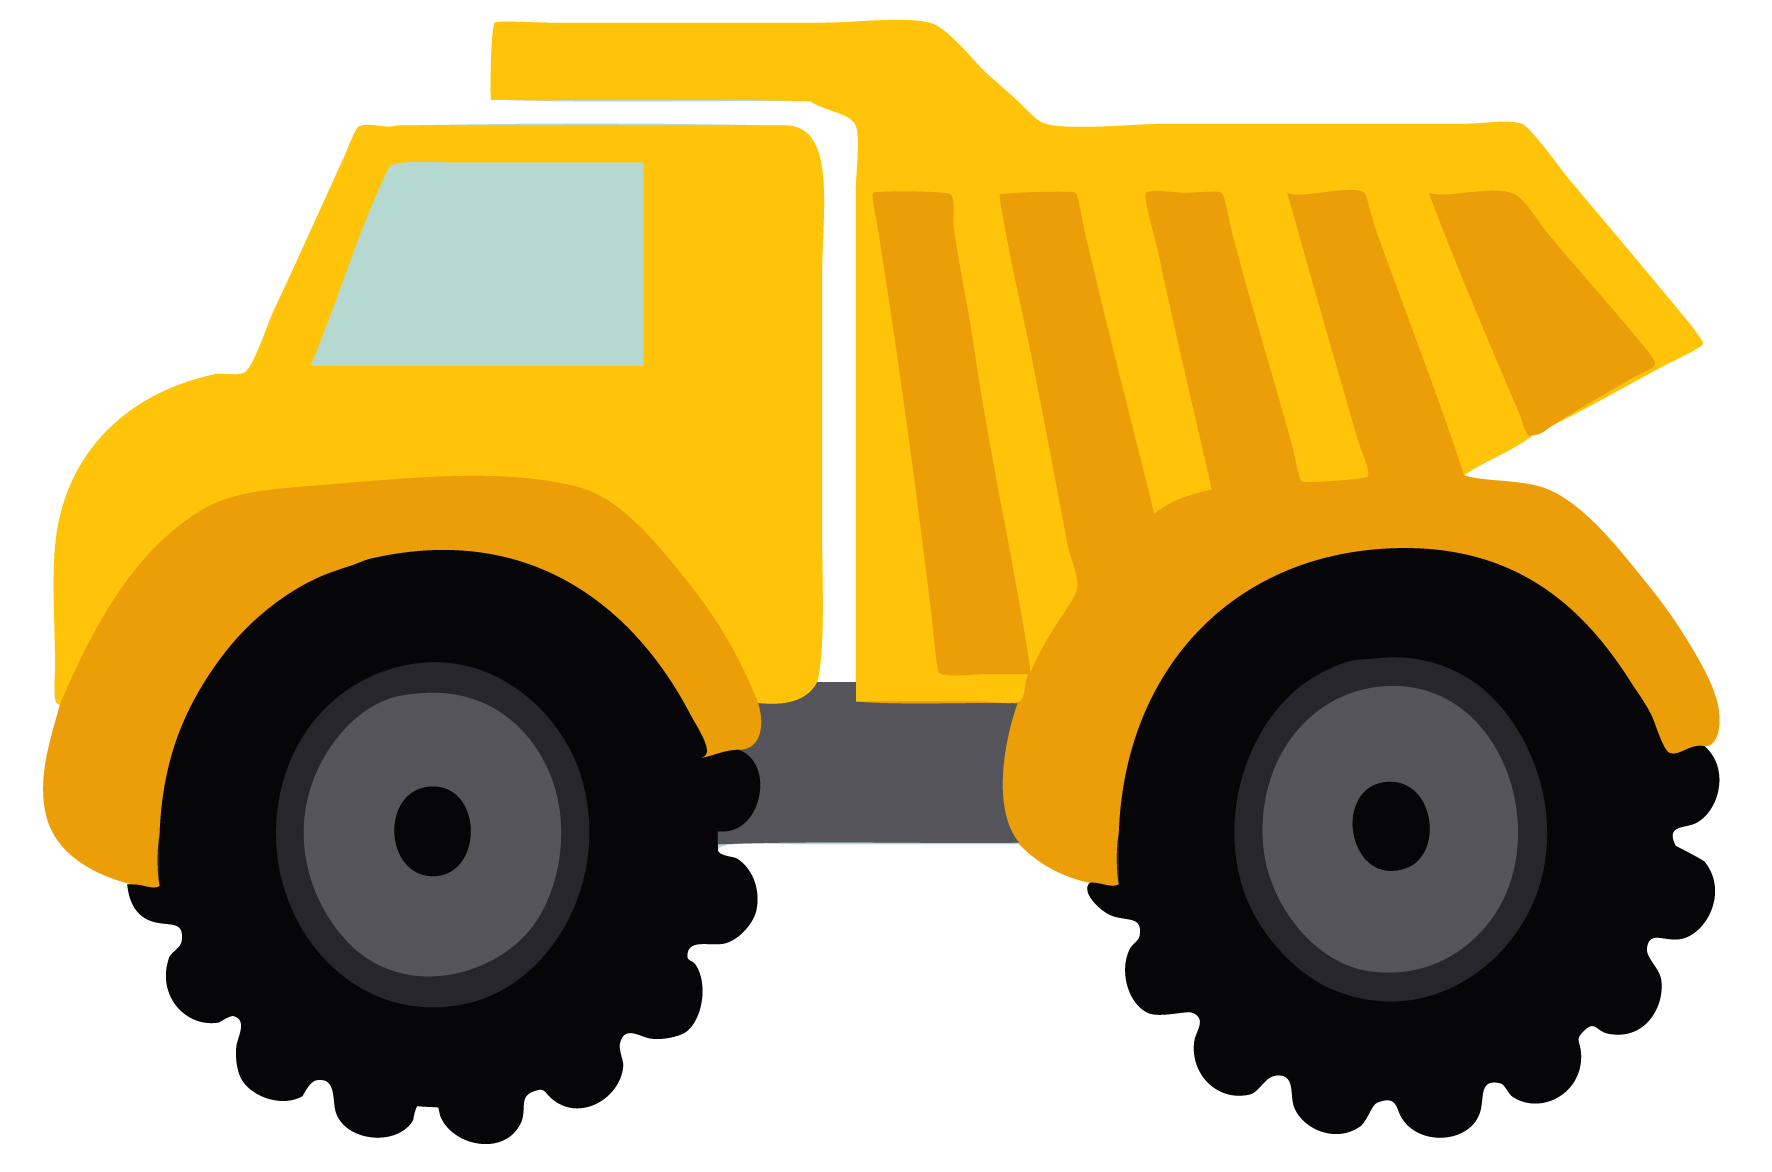 Dump Truck Clipart Black And White furthermore Mack titan  282014 29 furthermore Watch furthermore Watch additionally Loading A Car Cartoon Stji1wlUhmvfh2v8XiWpiDIYUNISDCBSNg1fjZz6cu0. on dump truck blue